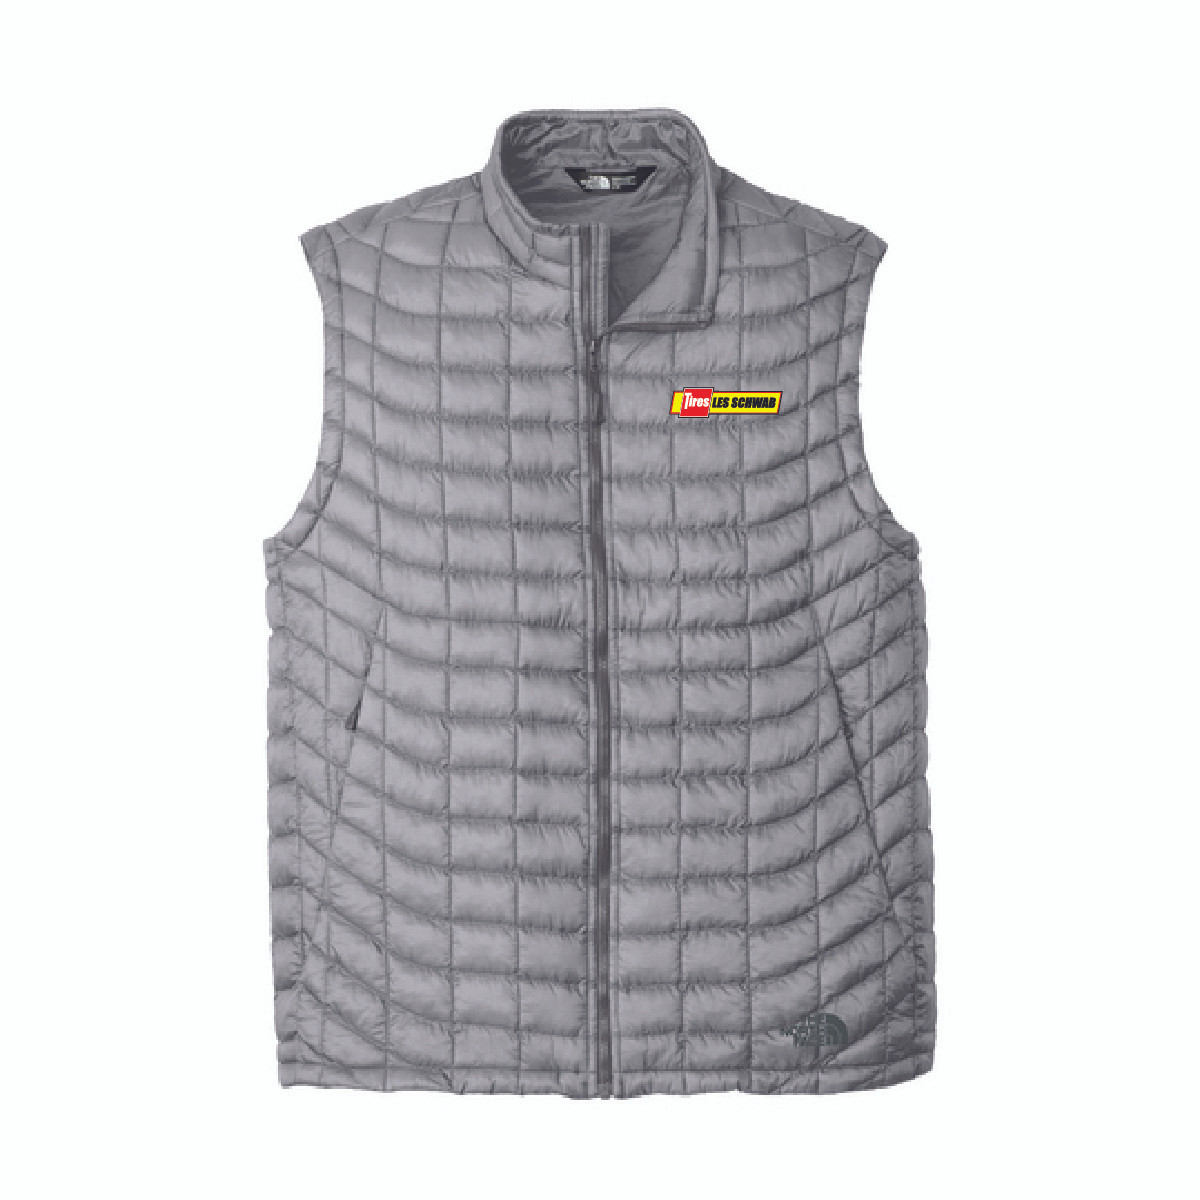 84ed800ec08e The North Face ThermoBall Trekker Vest - Les Schwab Gear